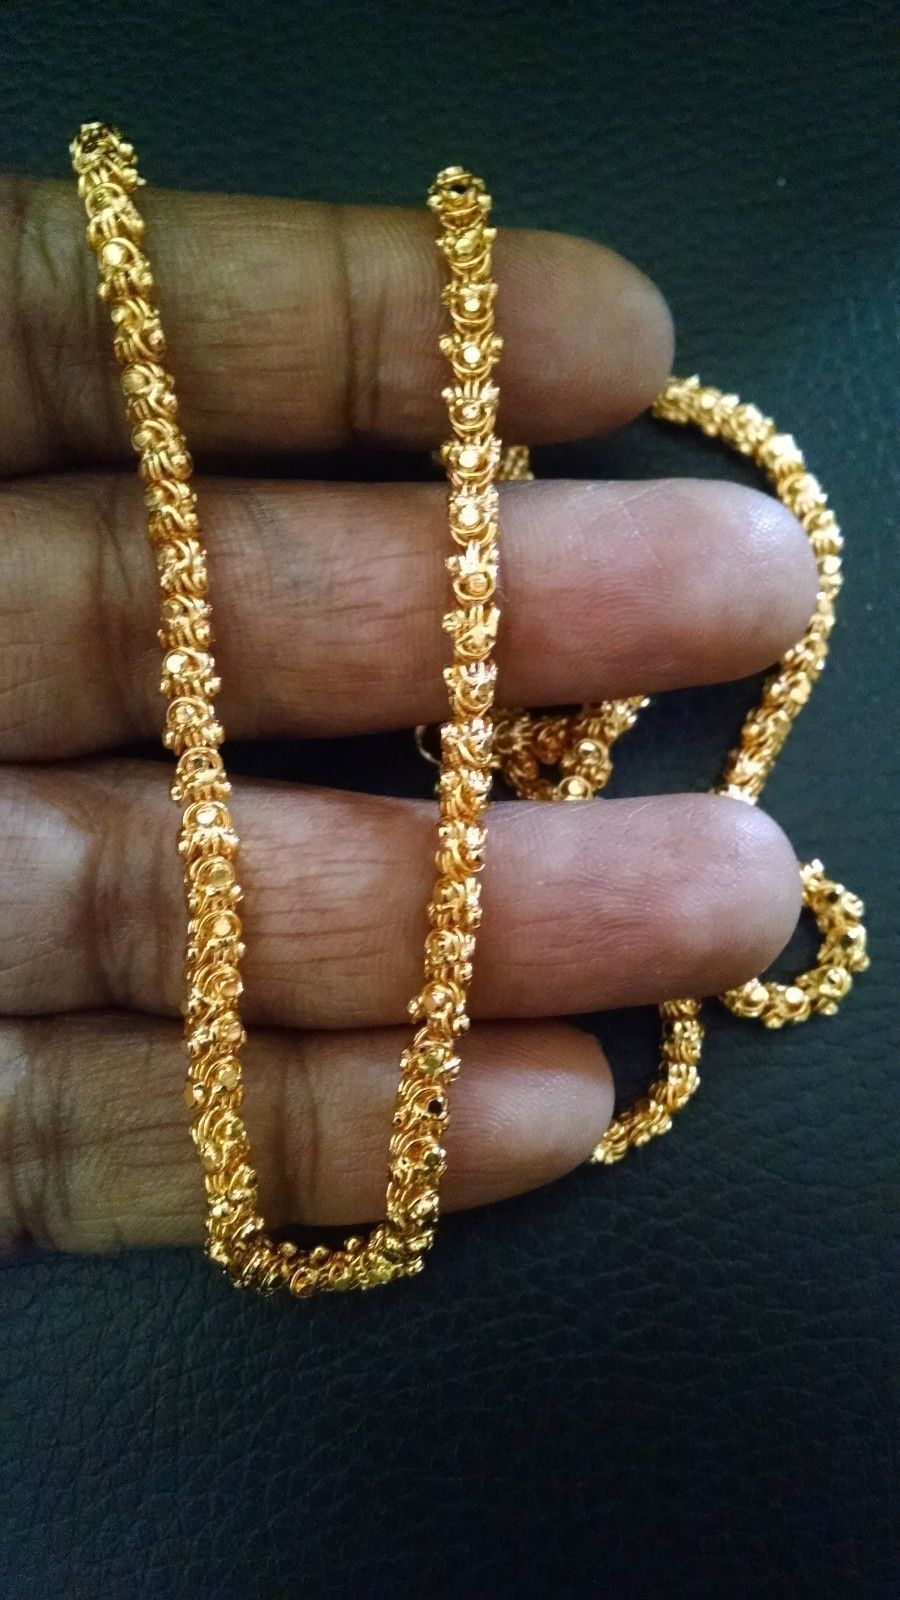 South Indian 30 Long Gold Plated Floral Chain Thick Wedding Necklace Jewelry Gold Chains For Men Gold Chain Jewelry Gold Jewelry Fashion